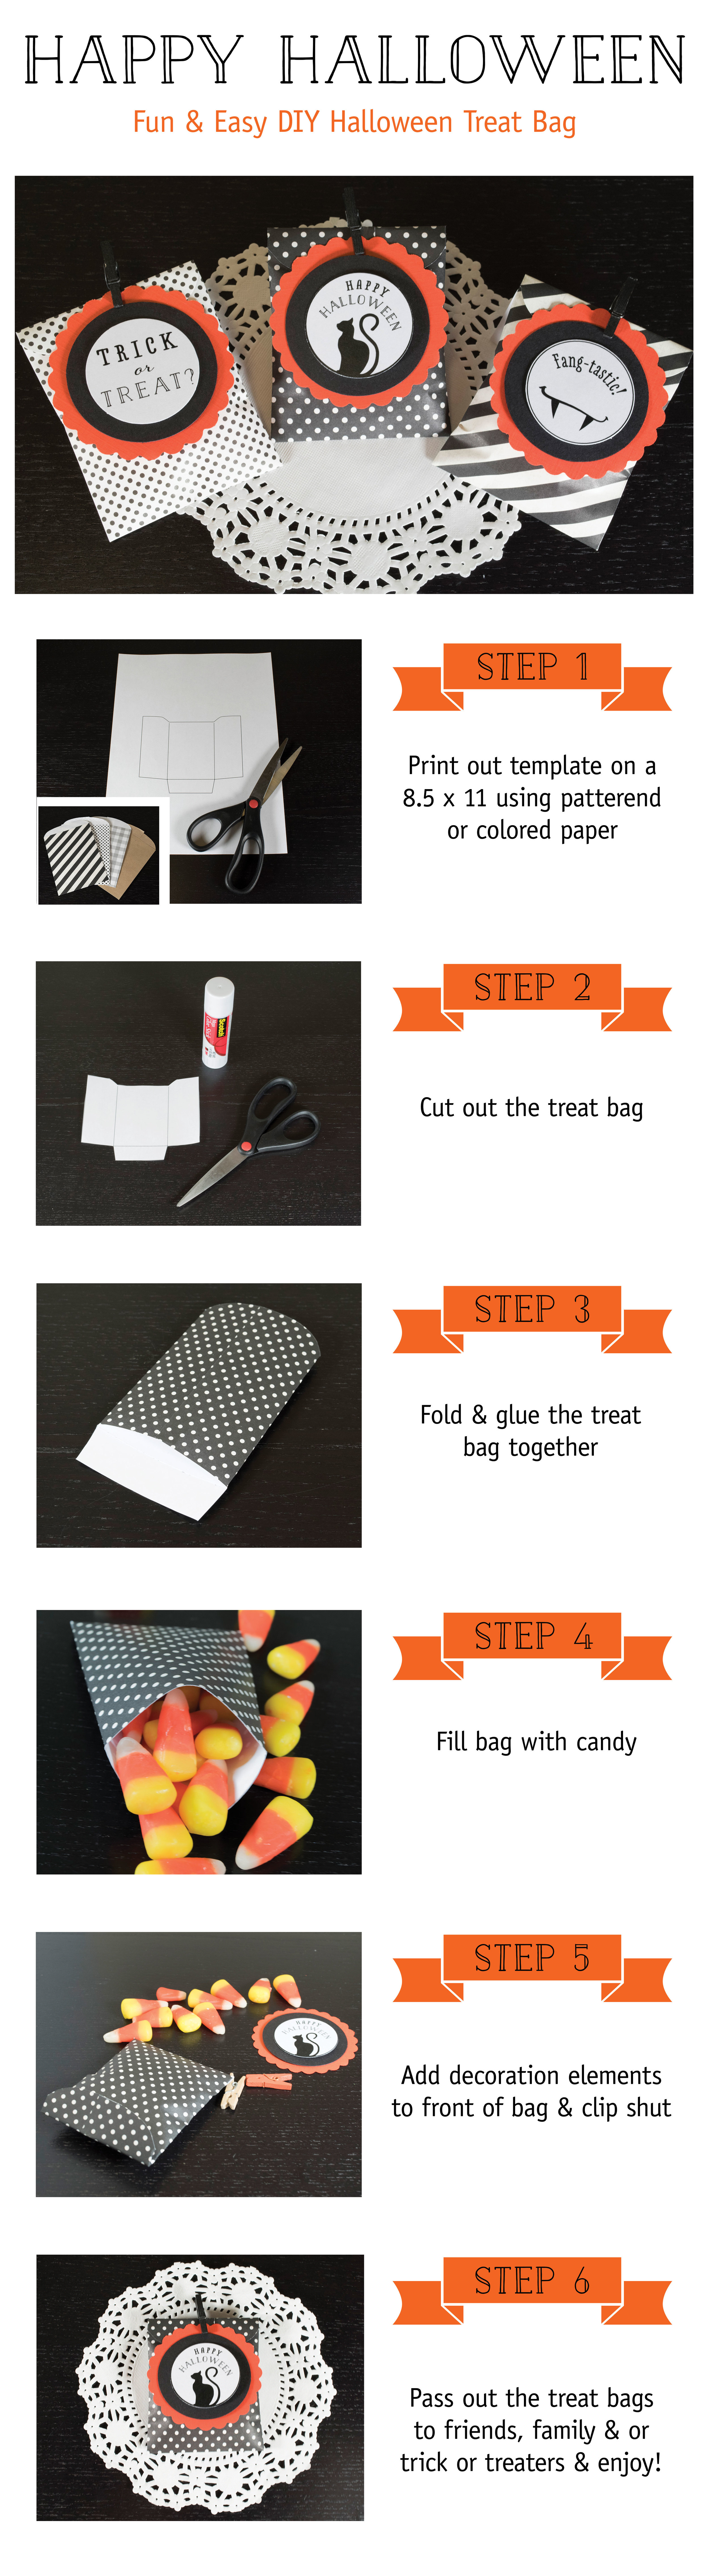 Click  here  to download treat bag template.